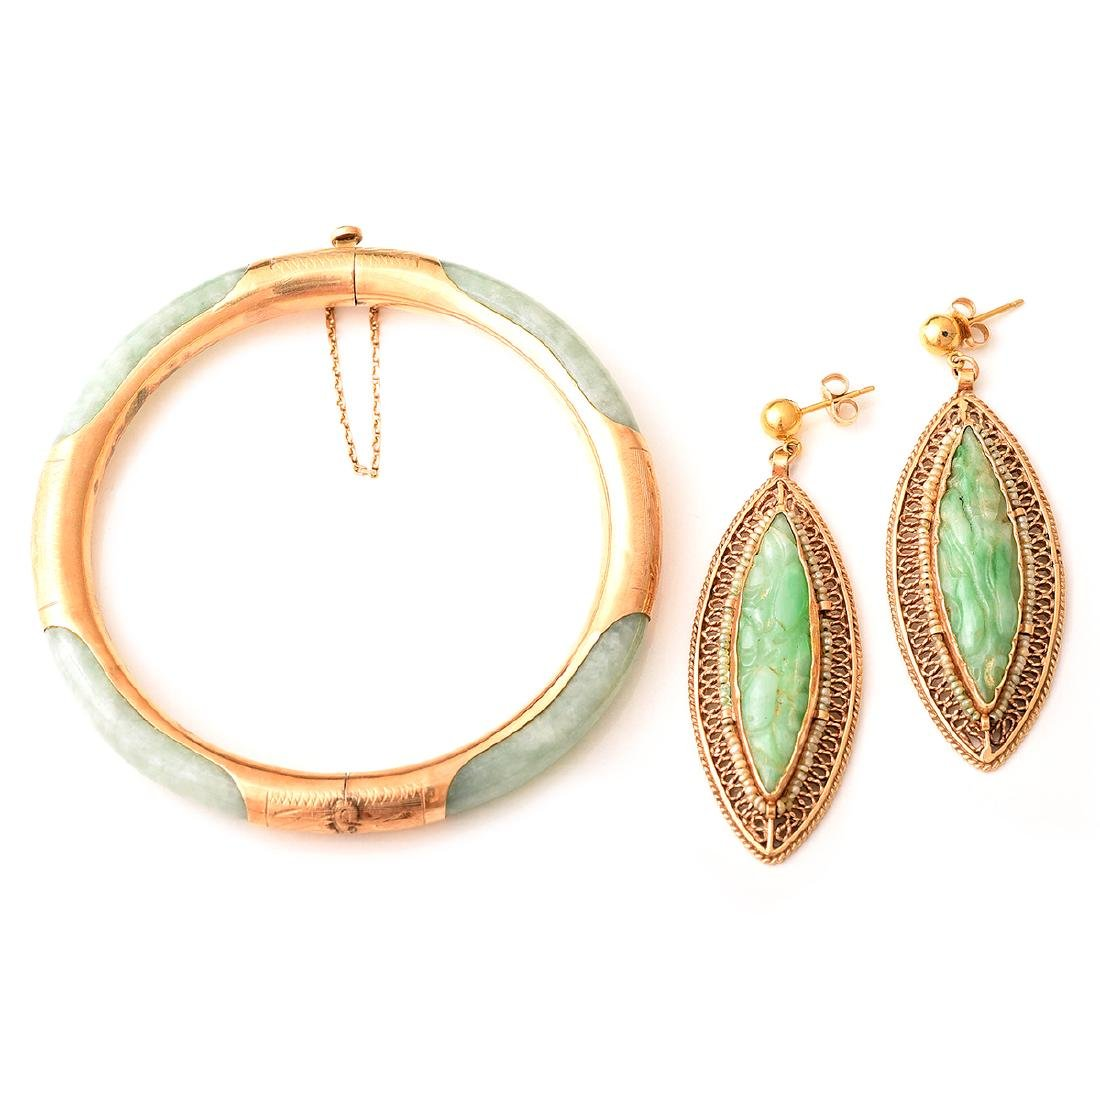 Jade, Seed Pearl, 14k Yellow Gold Jewelry Suite.